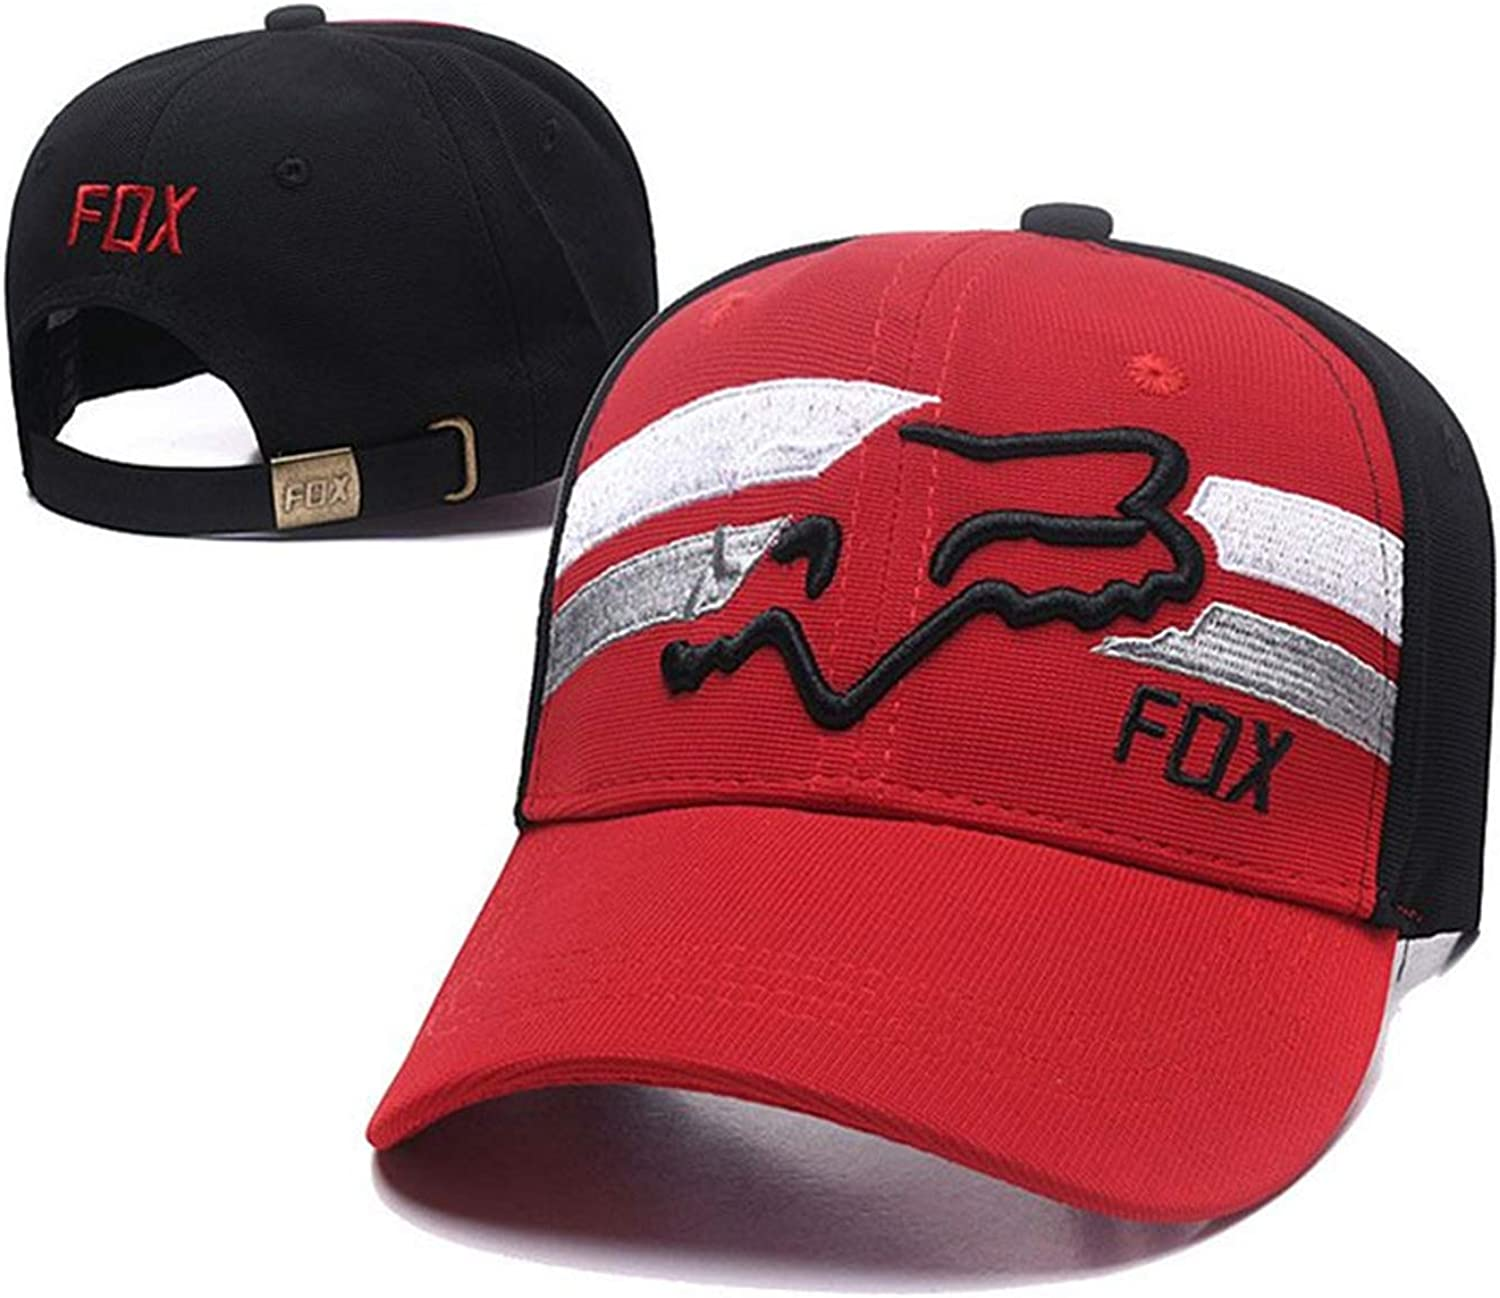 Quality Lovely Fox Baseball Caps Cattoon Pattern Embroidery Hats for Women Men Snapback Hip Hop Caps